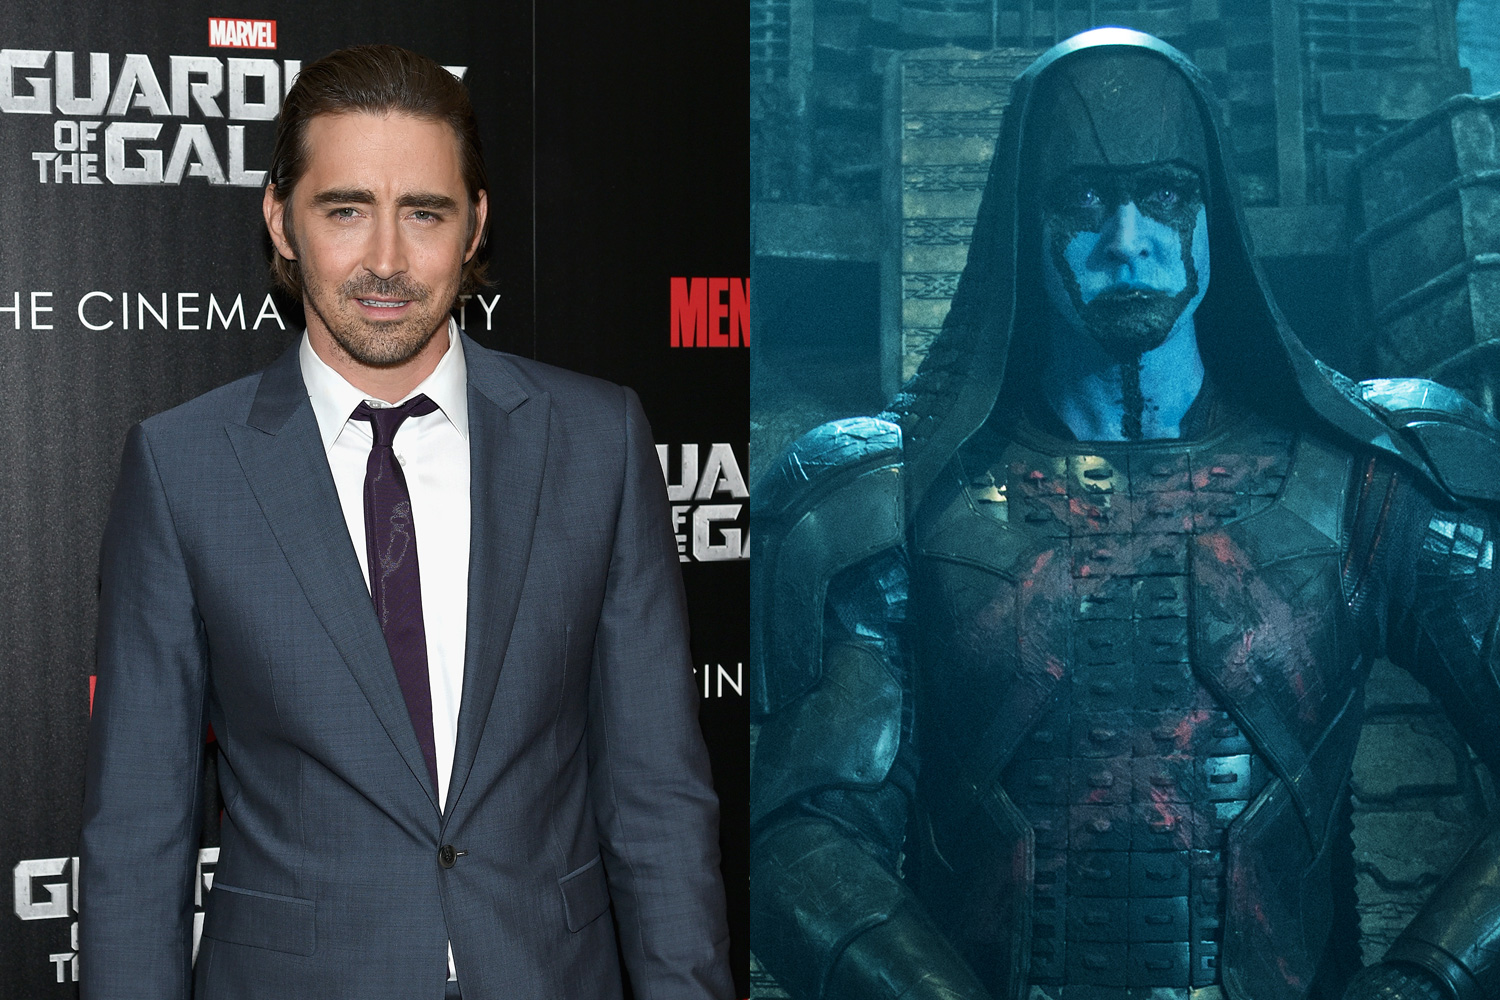 Having played the Elven king Thranduil in the Hobbit trilogy, Lee Pace is no stranger to makeup and prosthetics. In Guardians, he's painted in blue for his role as Ronan the Accuser.